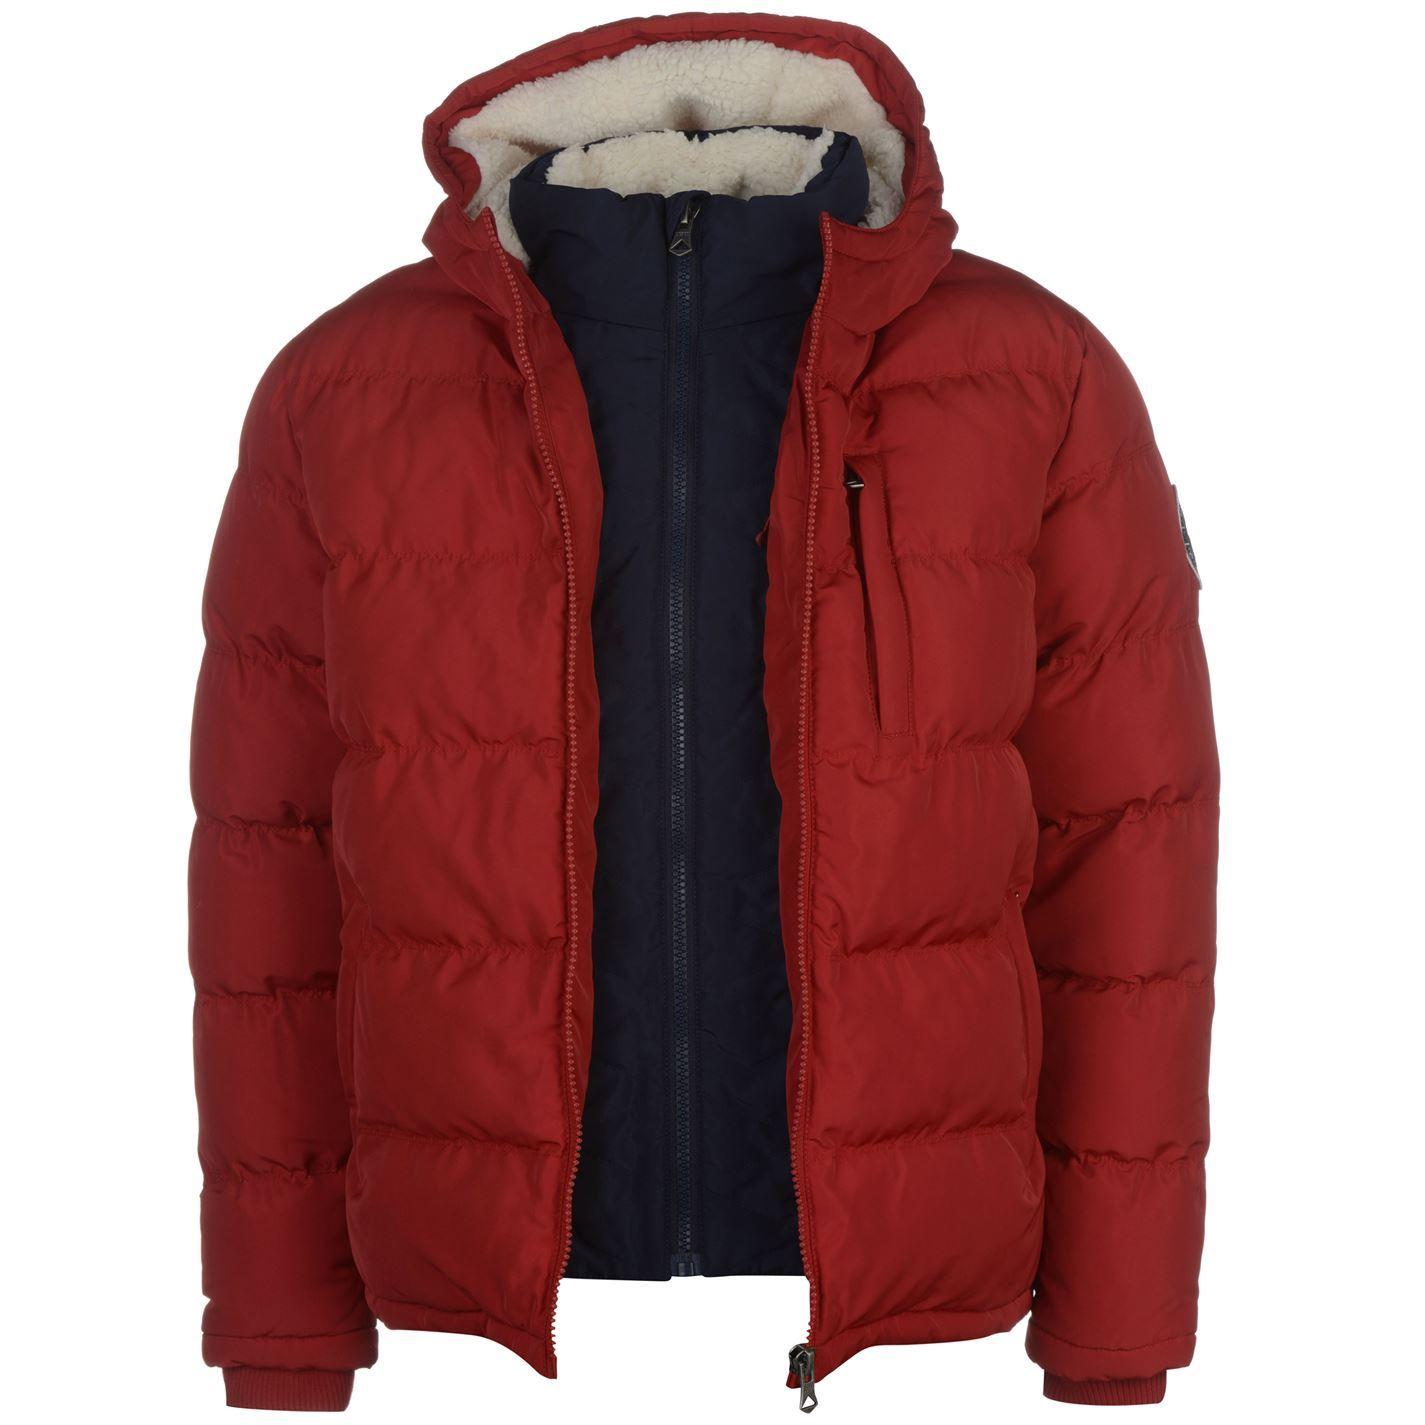 Soulcal Mens 2 Zip Bubble Jacket Padded Coat Top Hooded